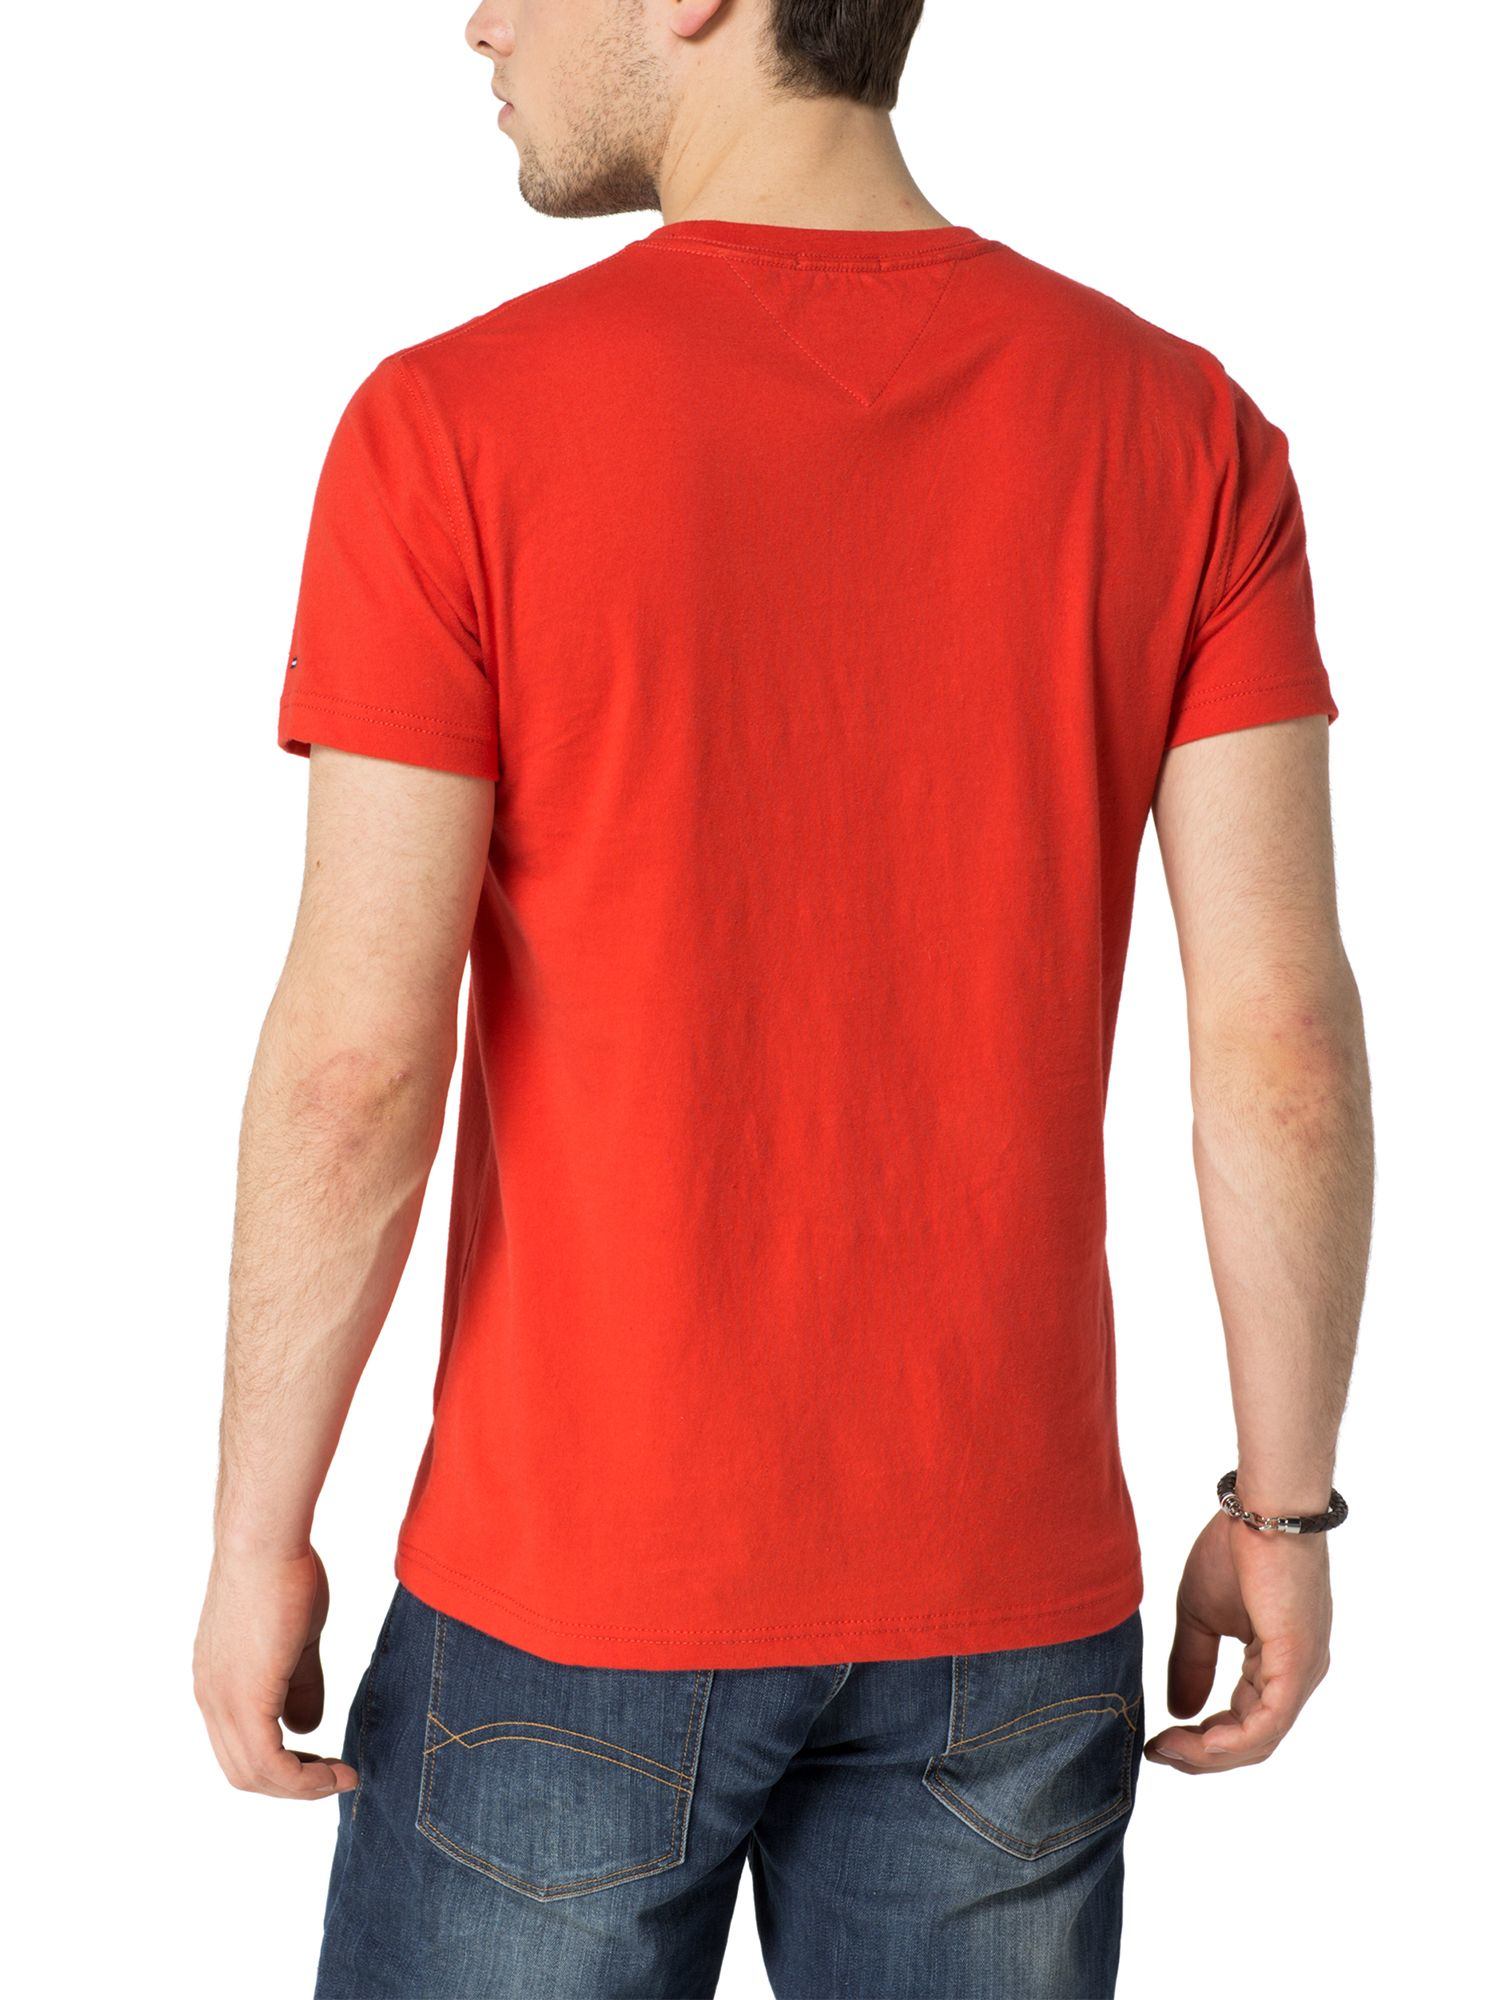 tommy hilfiger hilfiger t shirt in red for men lyst. Black Bedroom Furniture Sets. Home Design Ideas